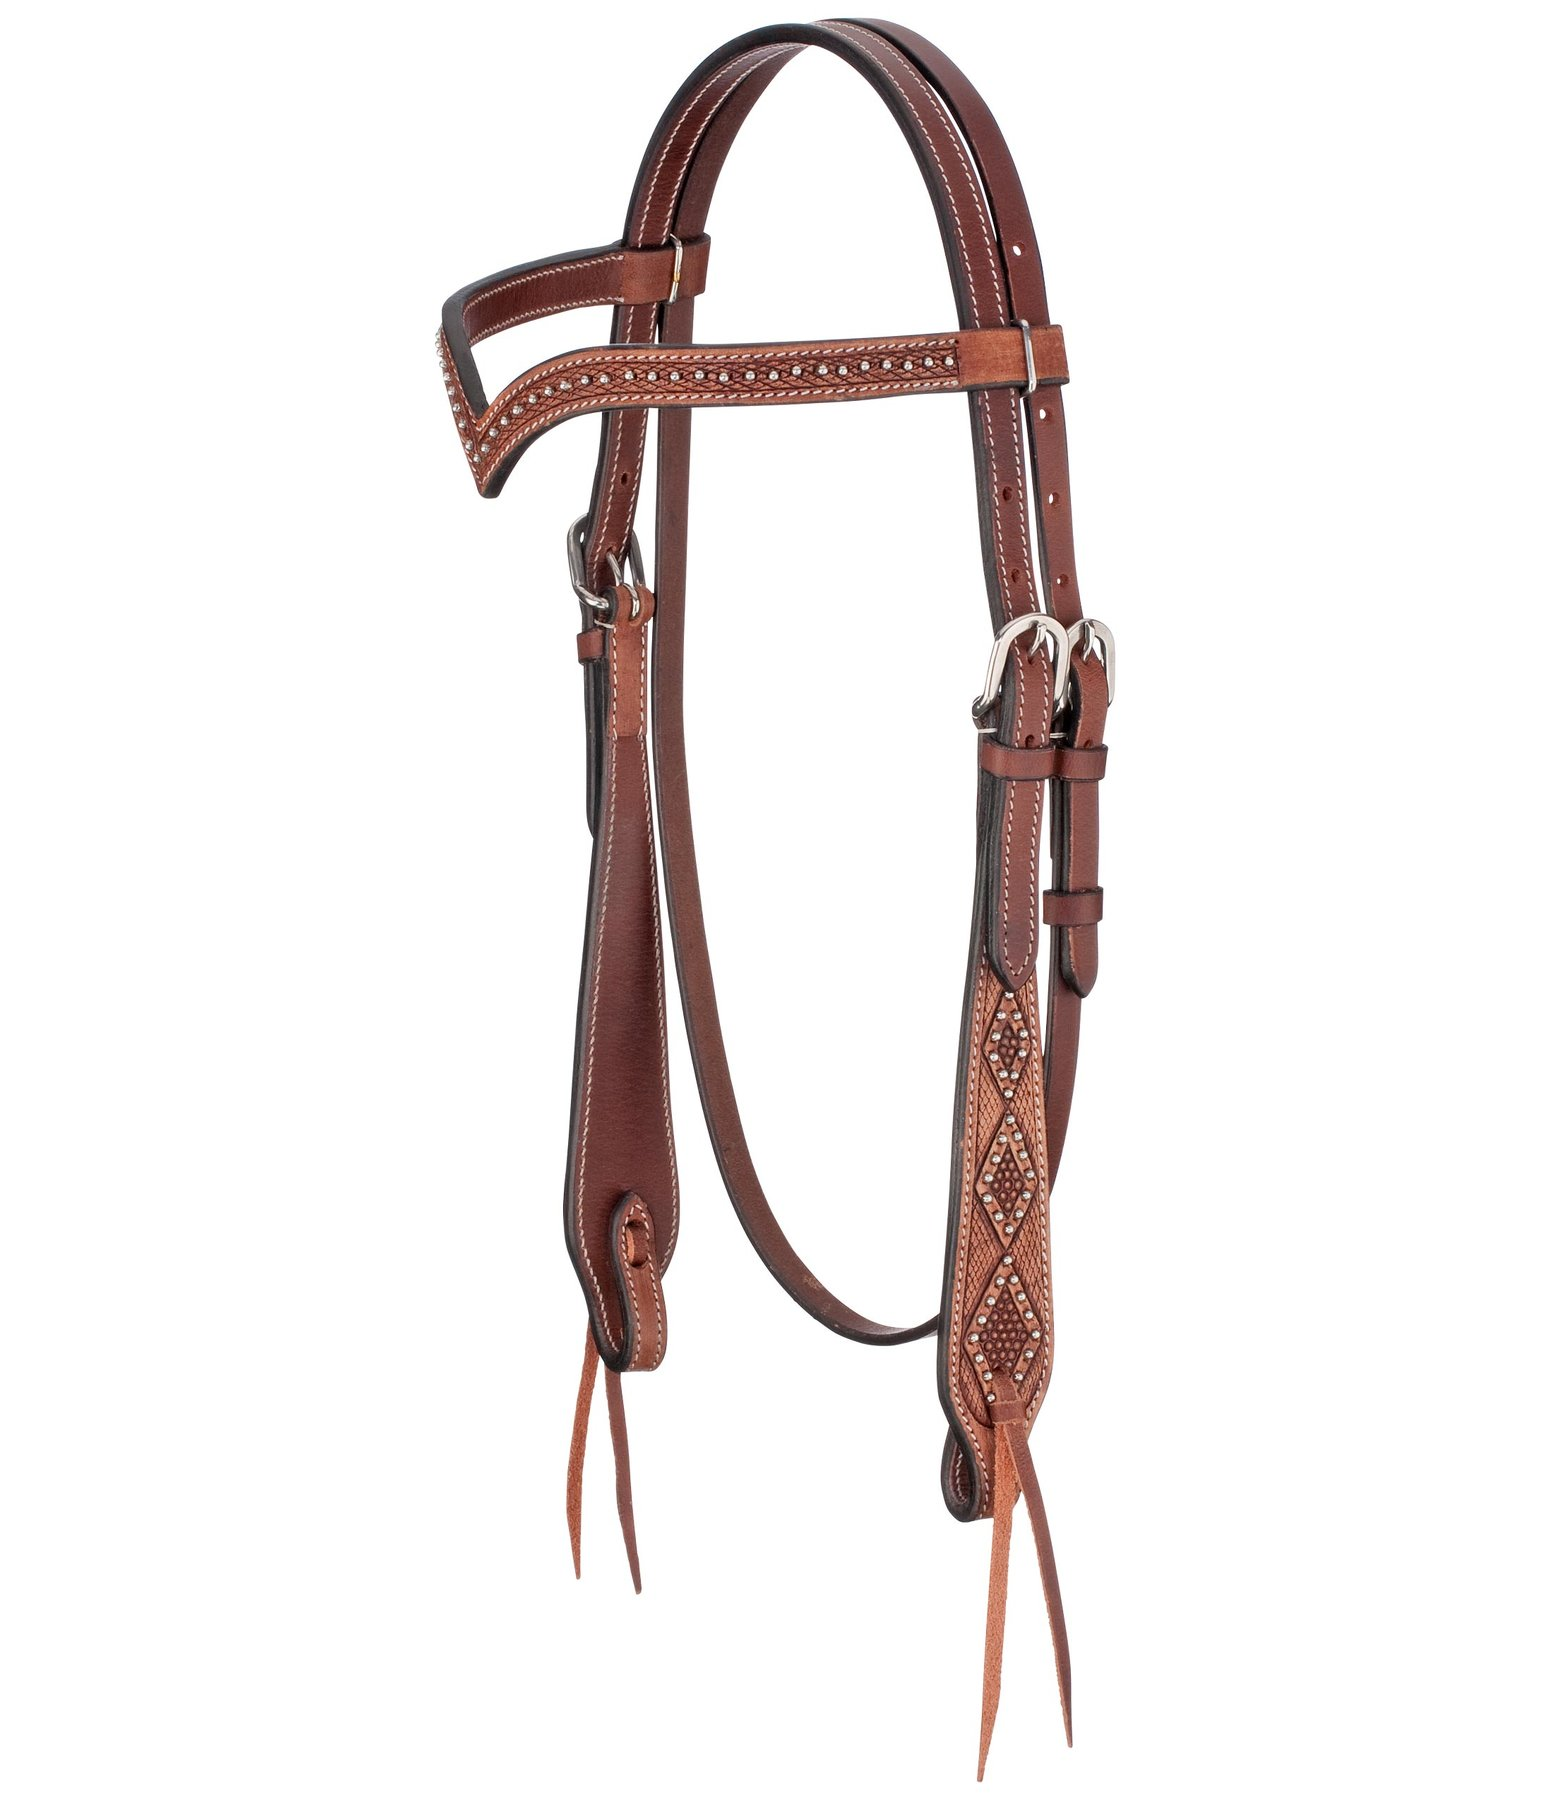 V-Shaped Headstall Studded